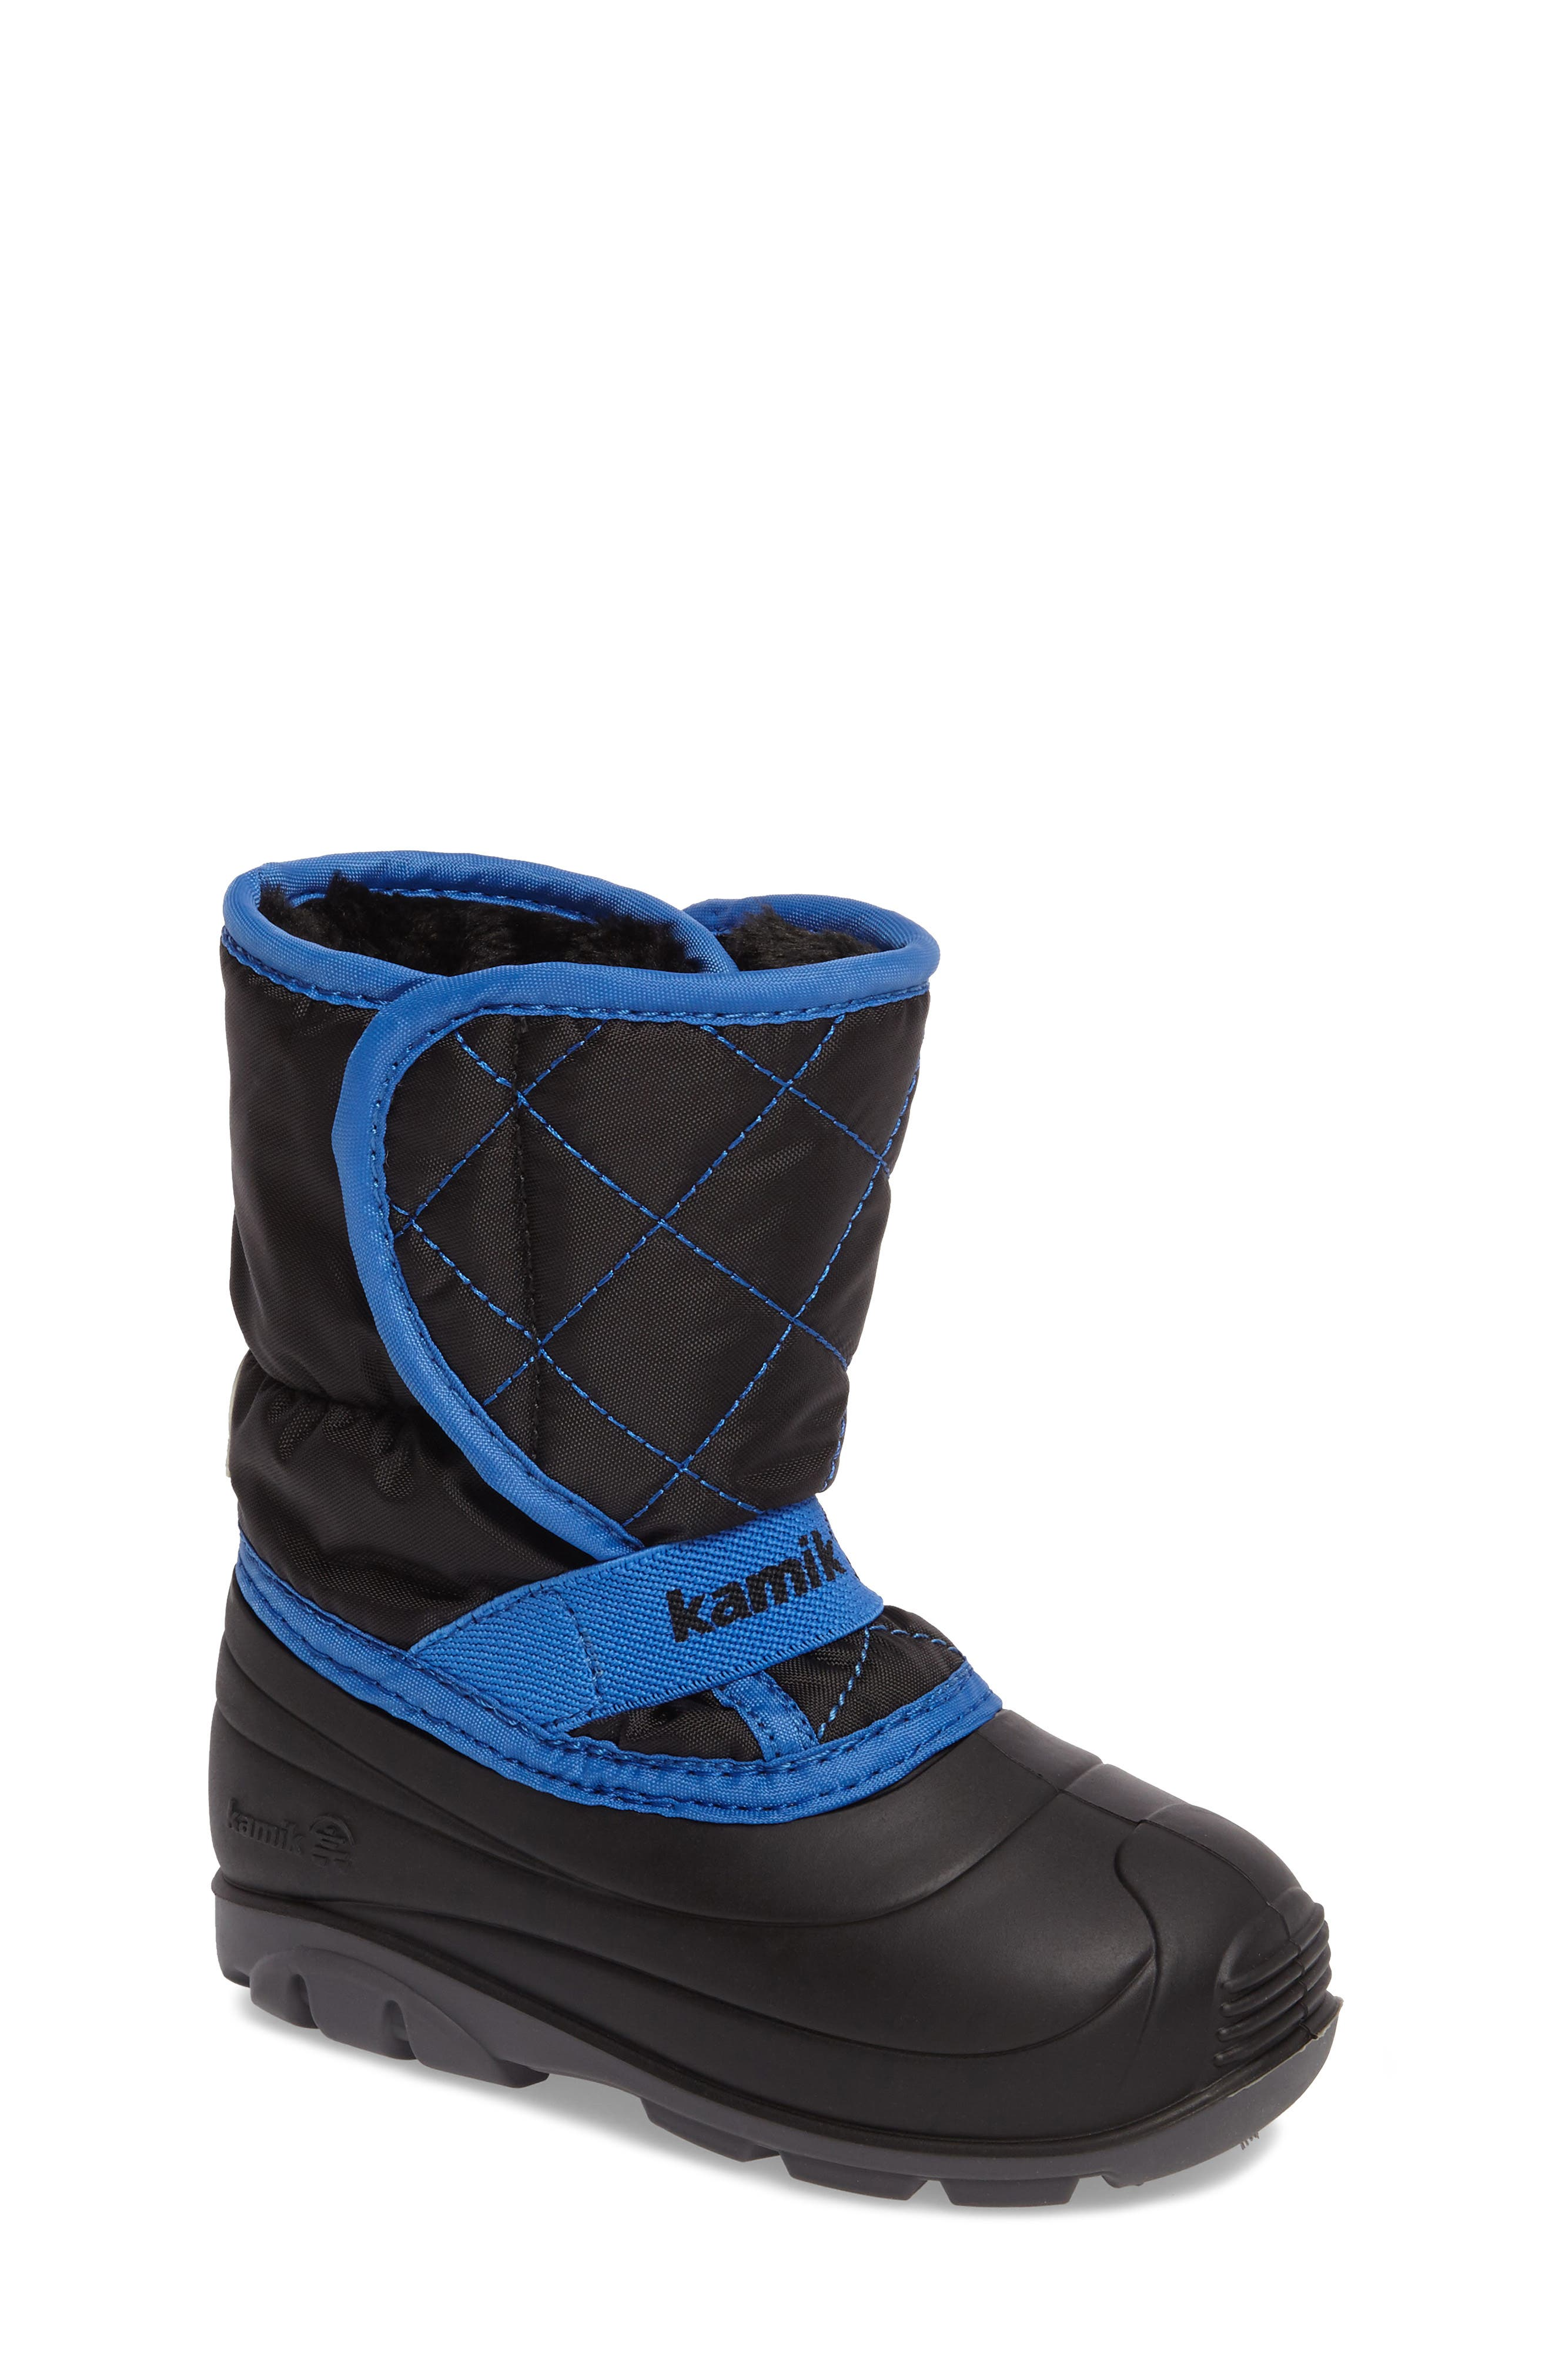 Pika2 Faux Fur Insulated Waterproof Snow Boot,                         Main,                         color, 010